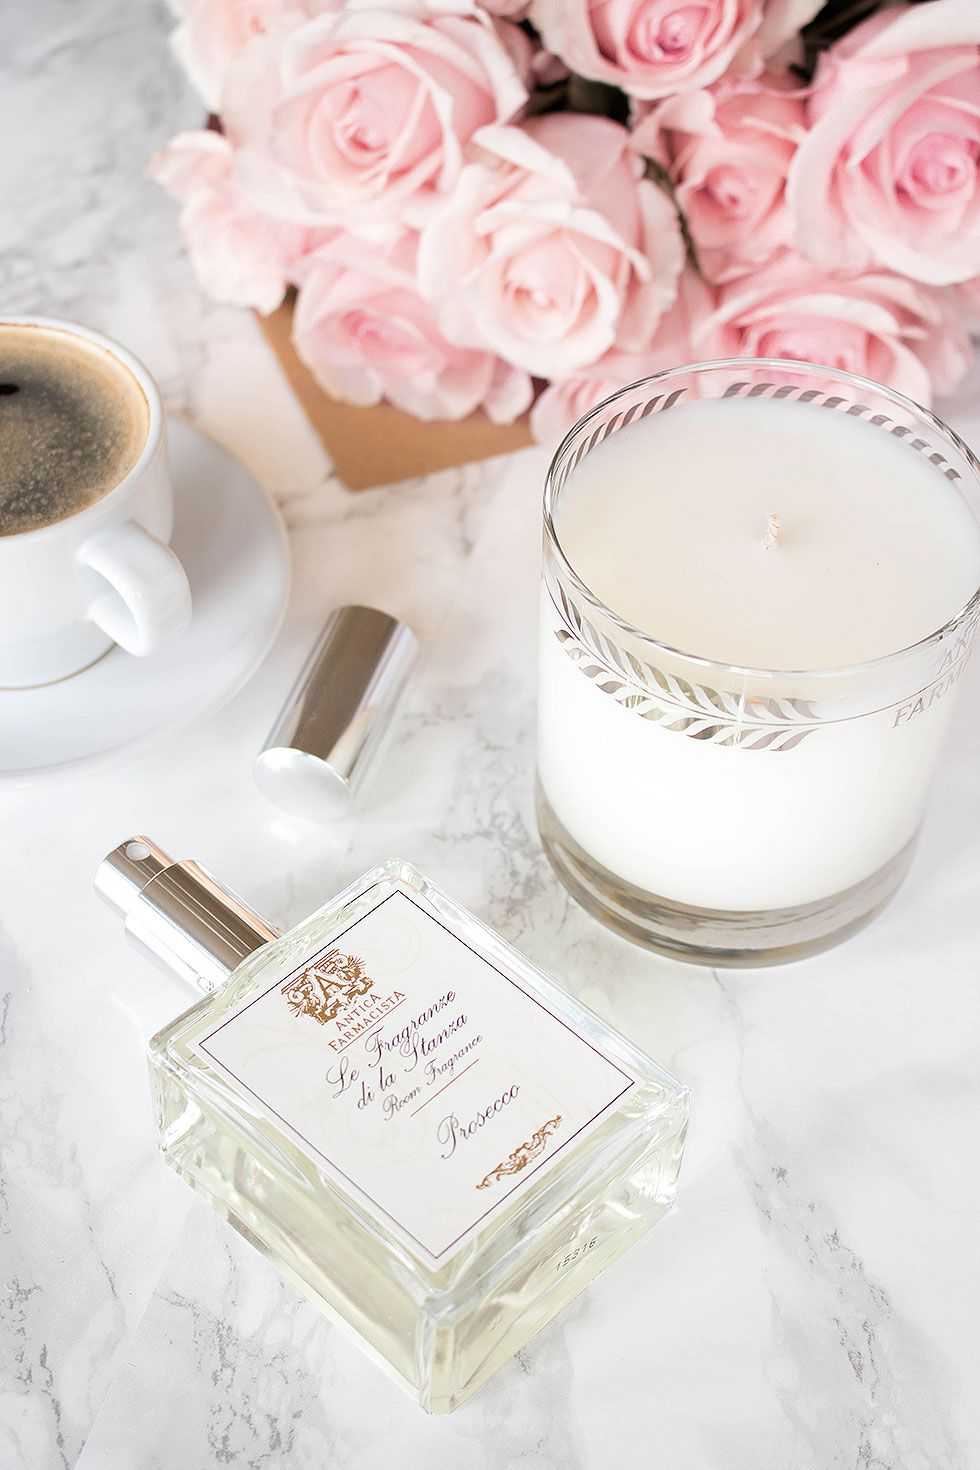 Effortlessly transition into spring with these 5 accessories and scents to try this spring season featuring Antica Farmacista Platinum Round White Candle and Antica Farmacista Room and Linen Spray with pink roses, espresso, and matches